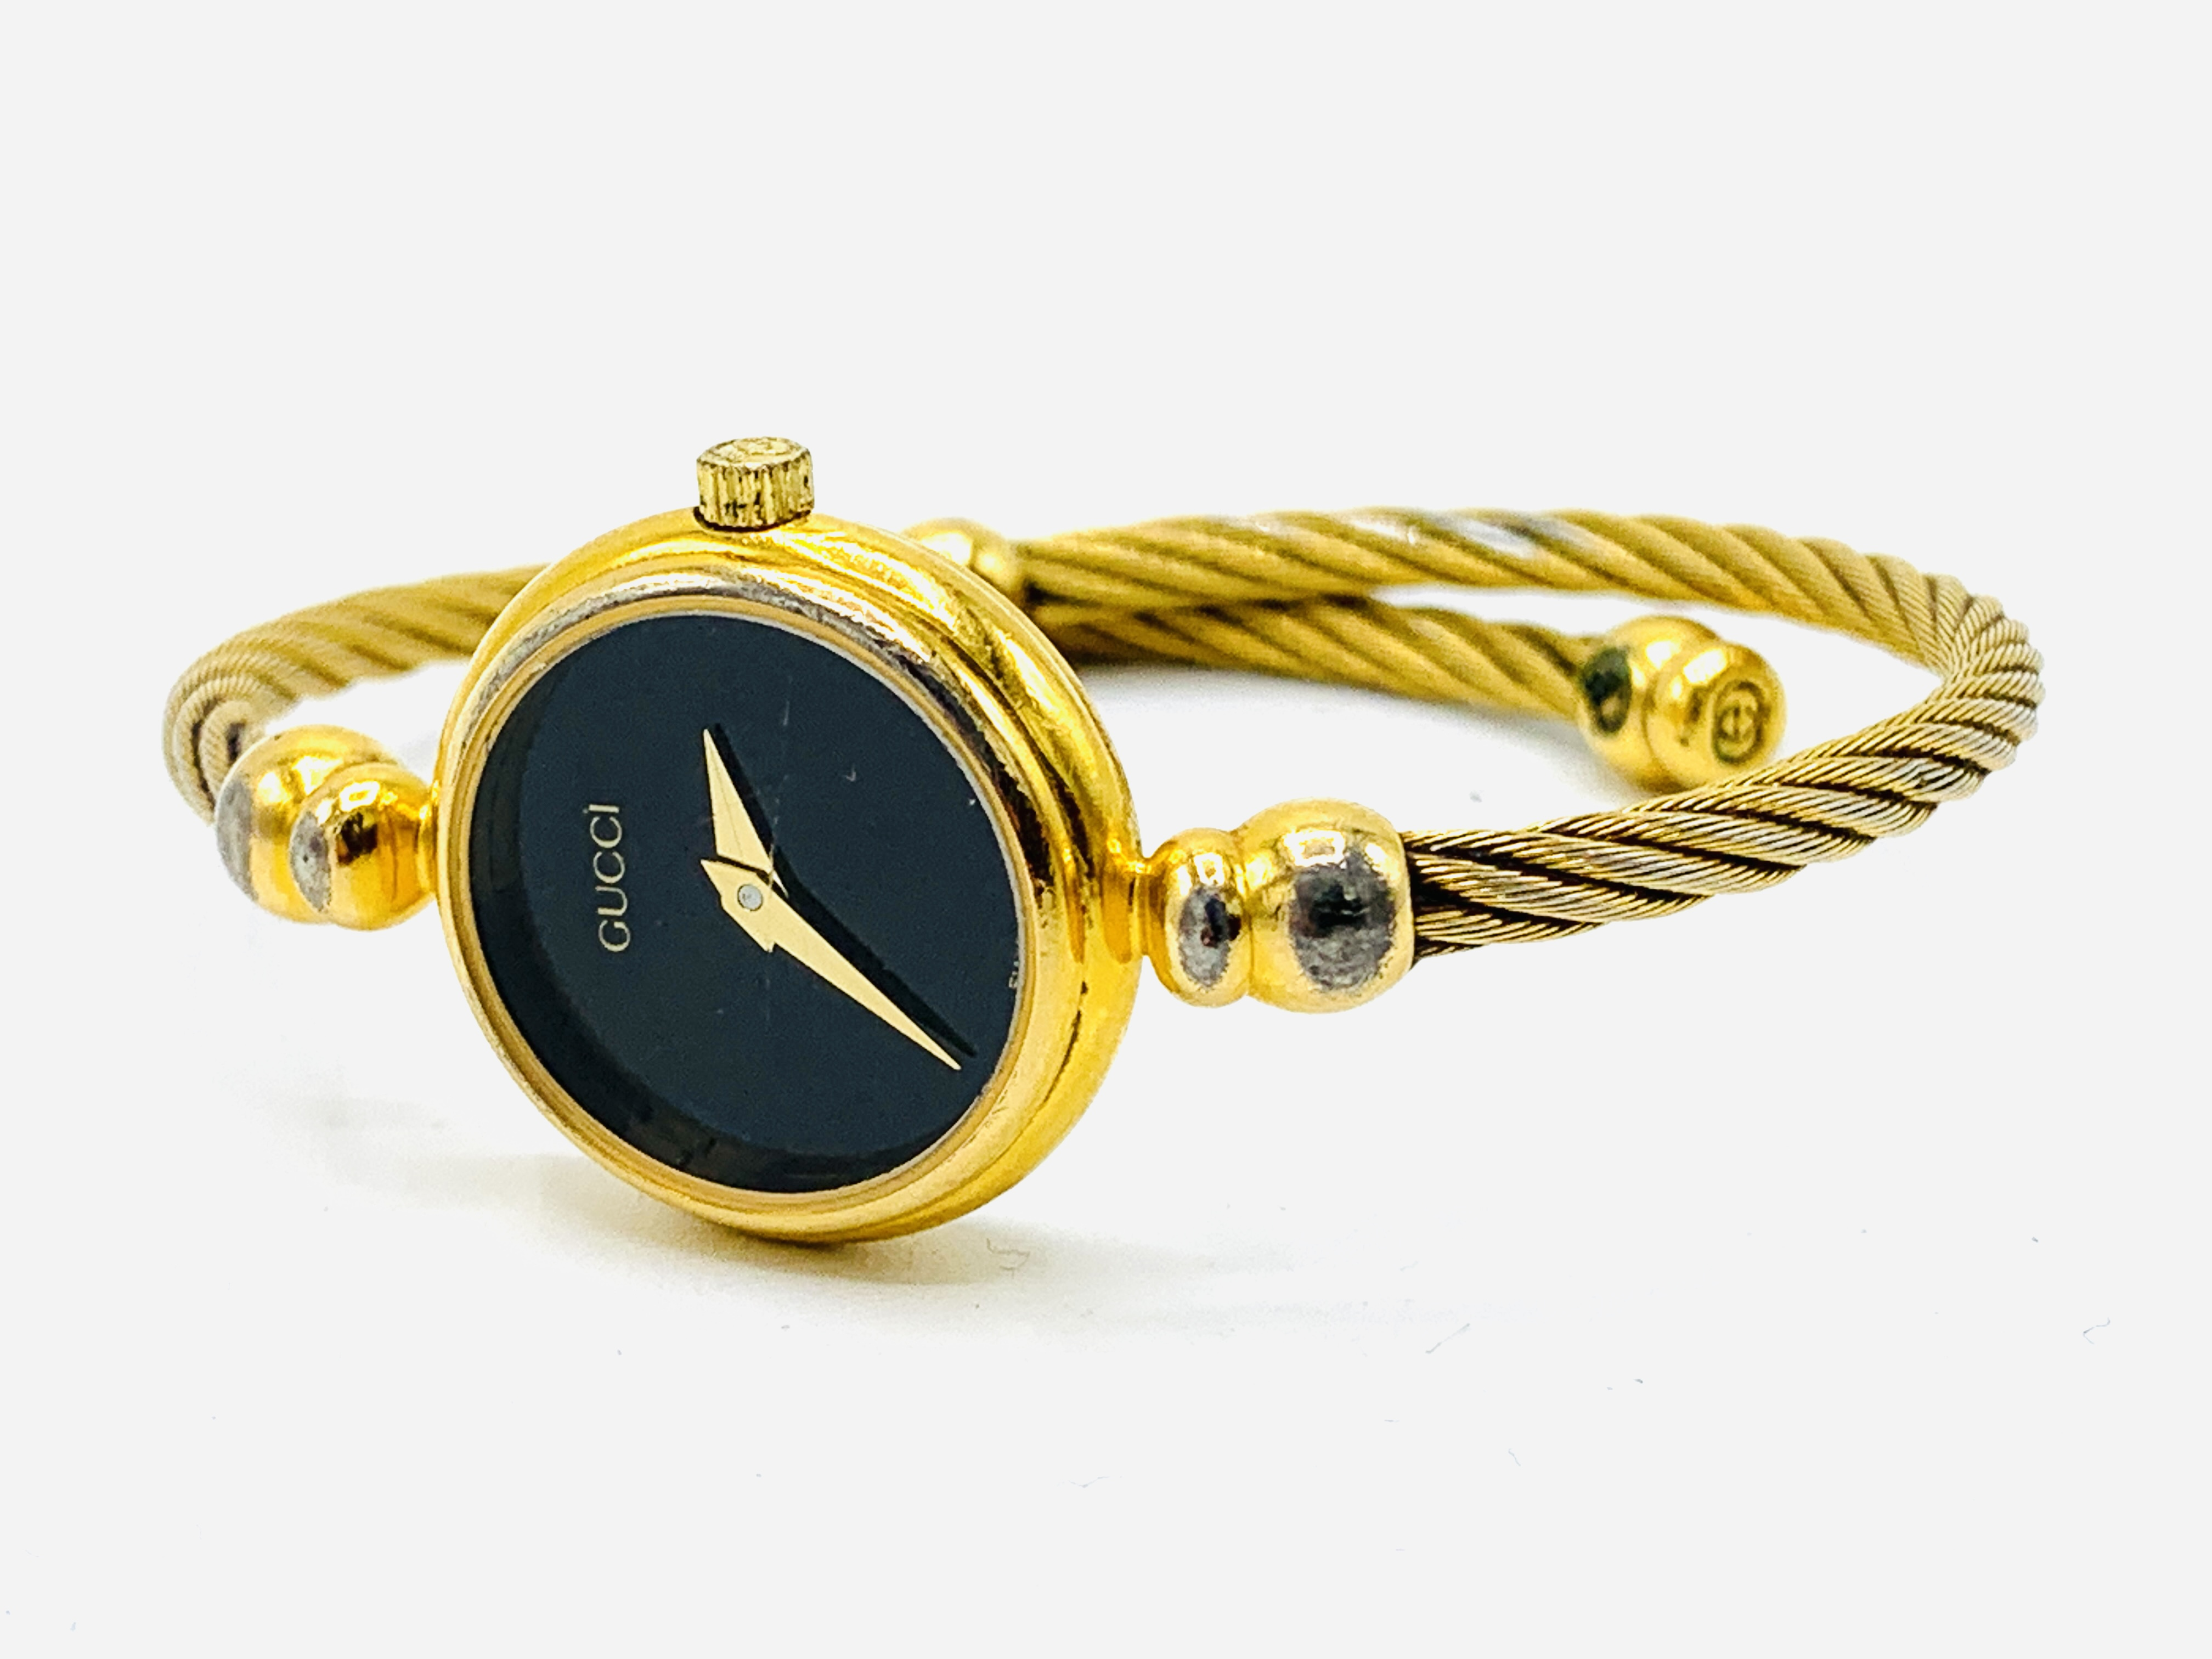 Gucci gold plate case watch with bangle strap, no. 2700.2.L - Image 2 of 3